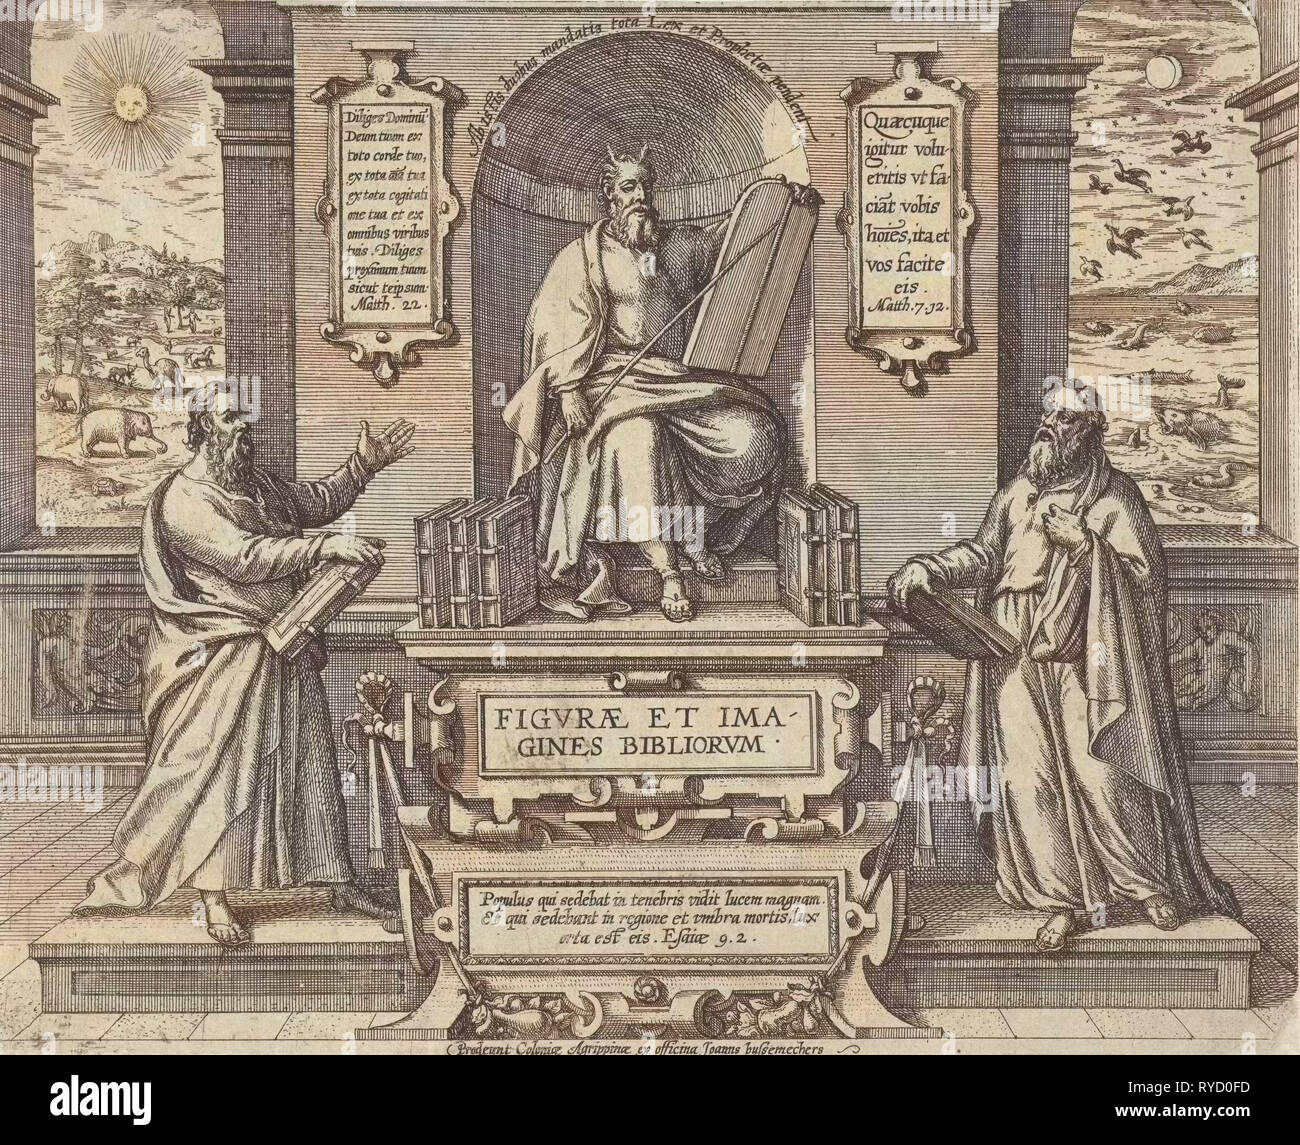 Moses with the law in the company of two prophets, Johann Bussemacher, 1577-1627 - Stock Image